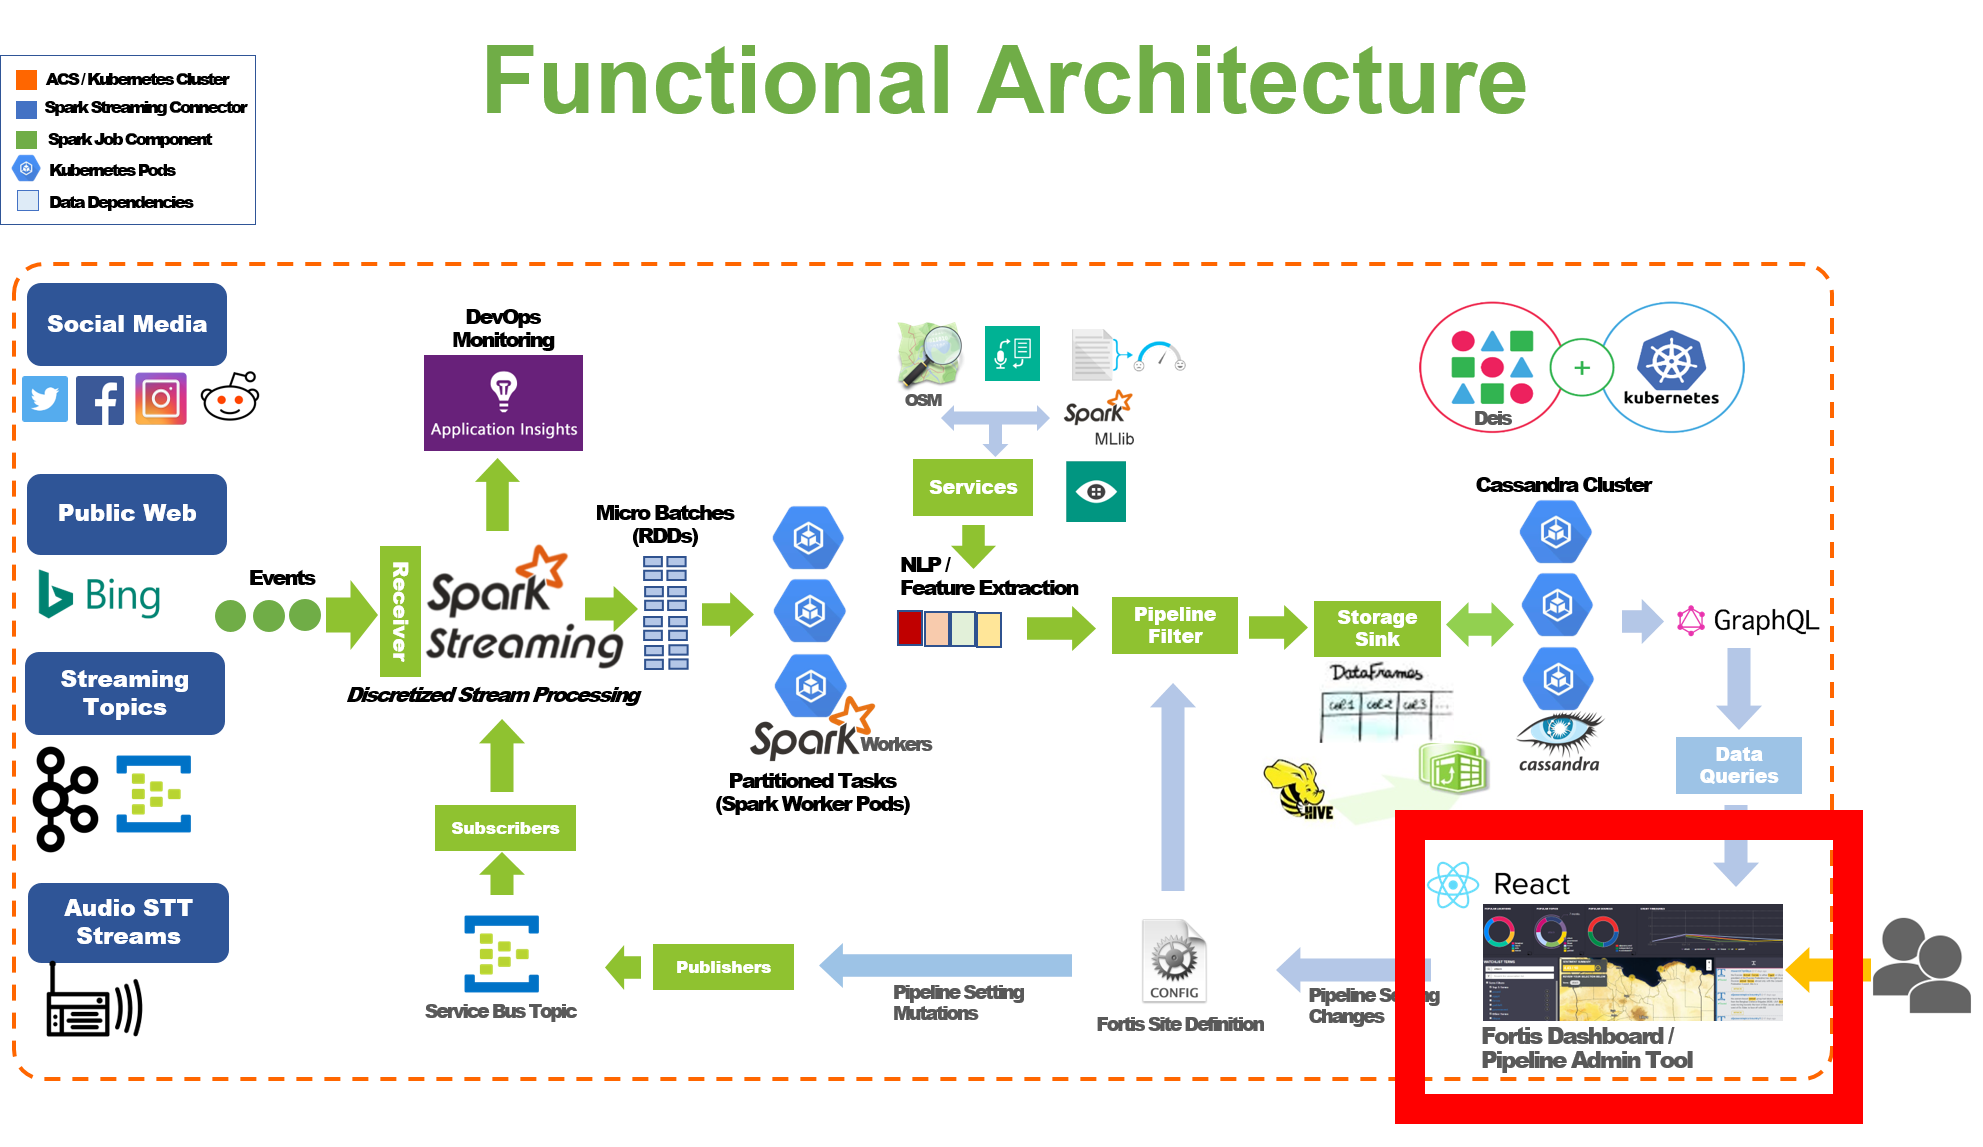 Overview of Fortis architecture with project-fortis-interfaces responsibility highlighted